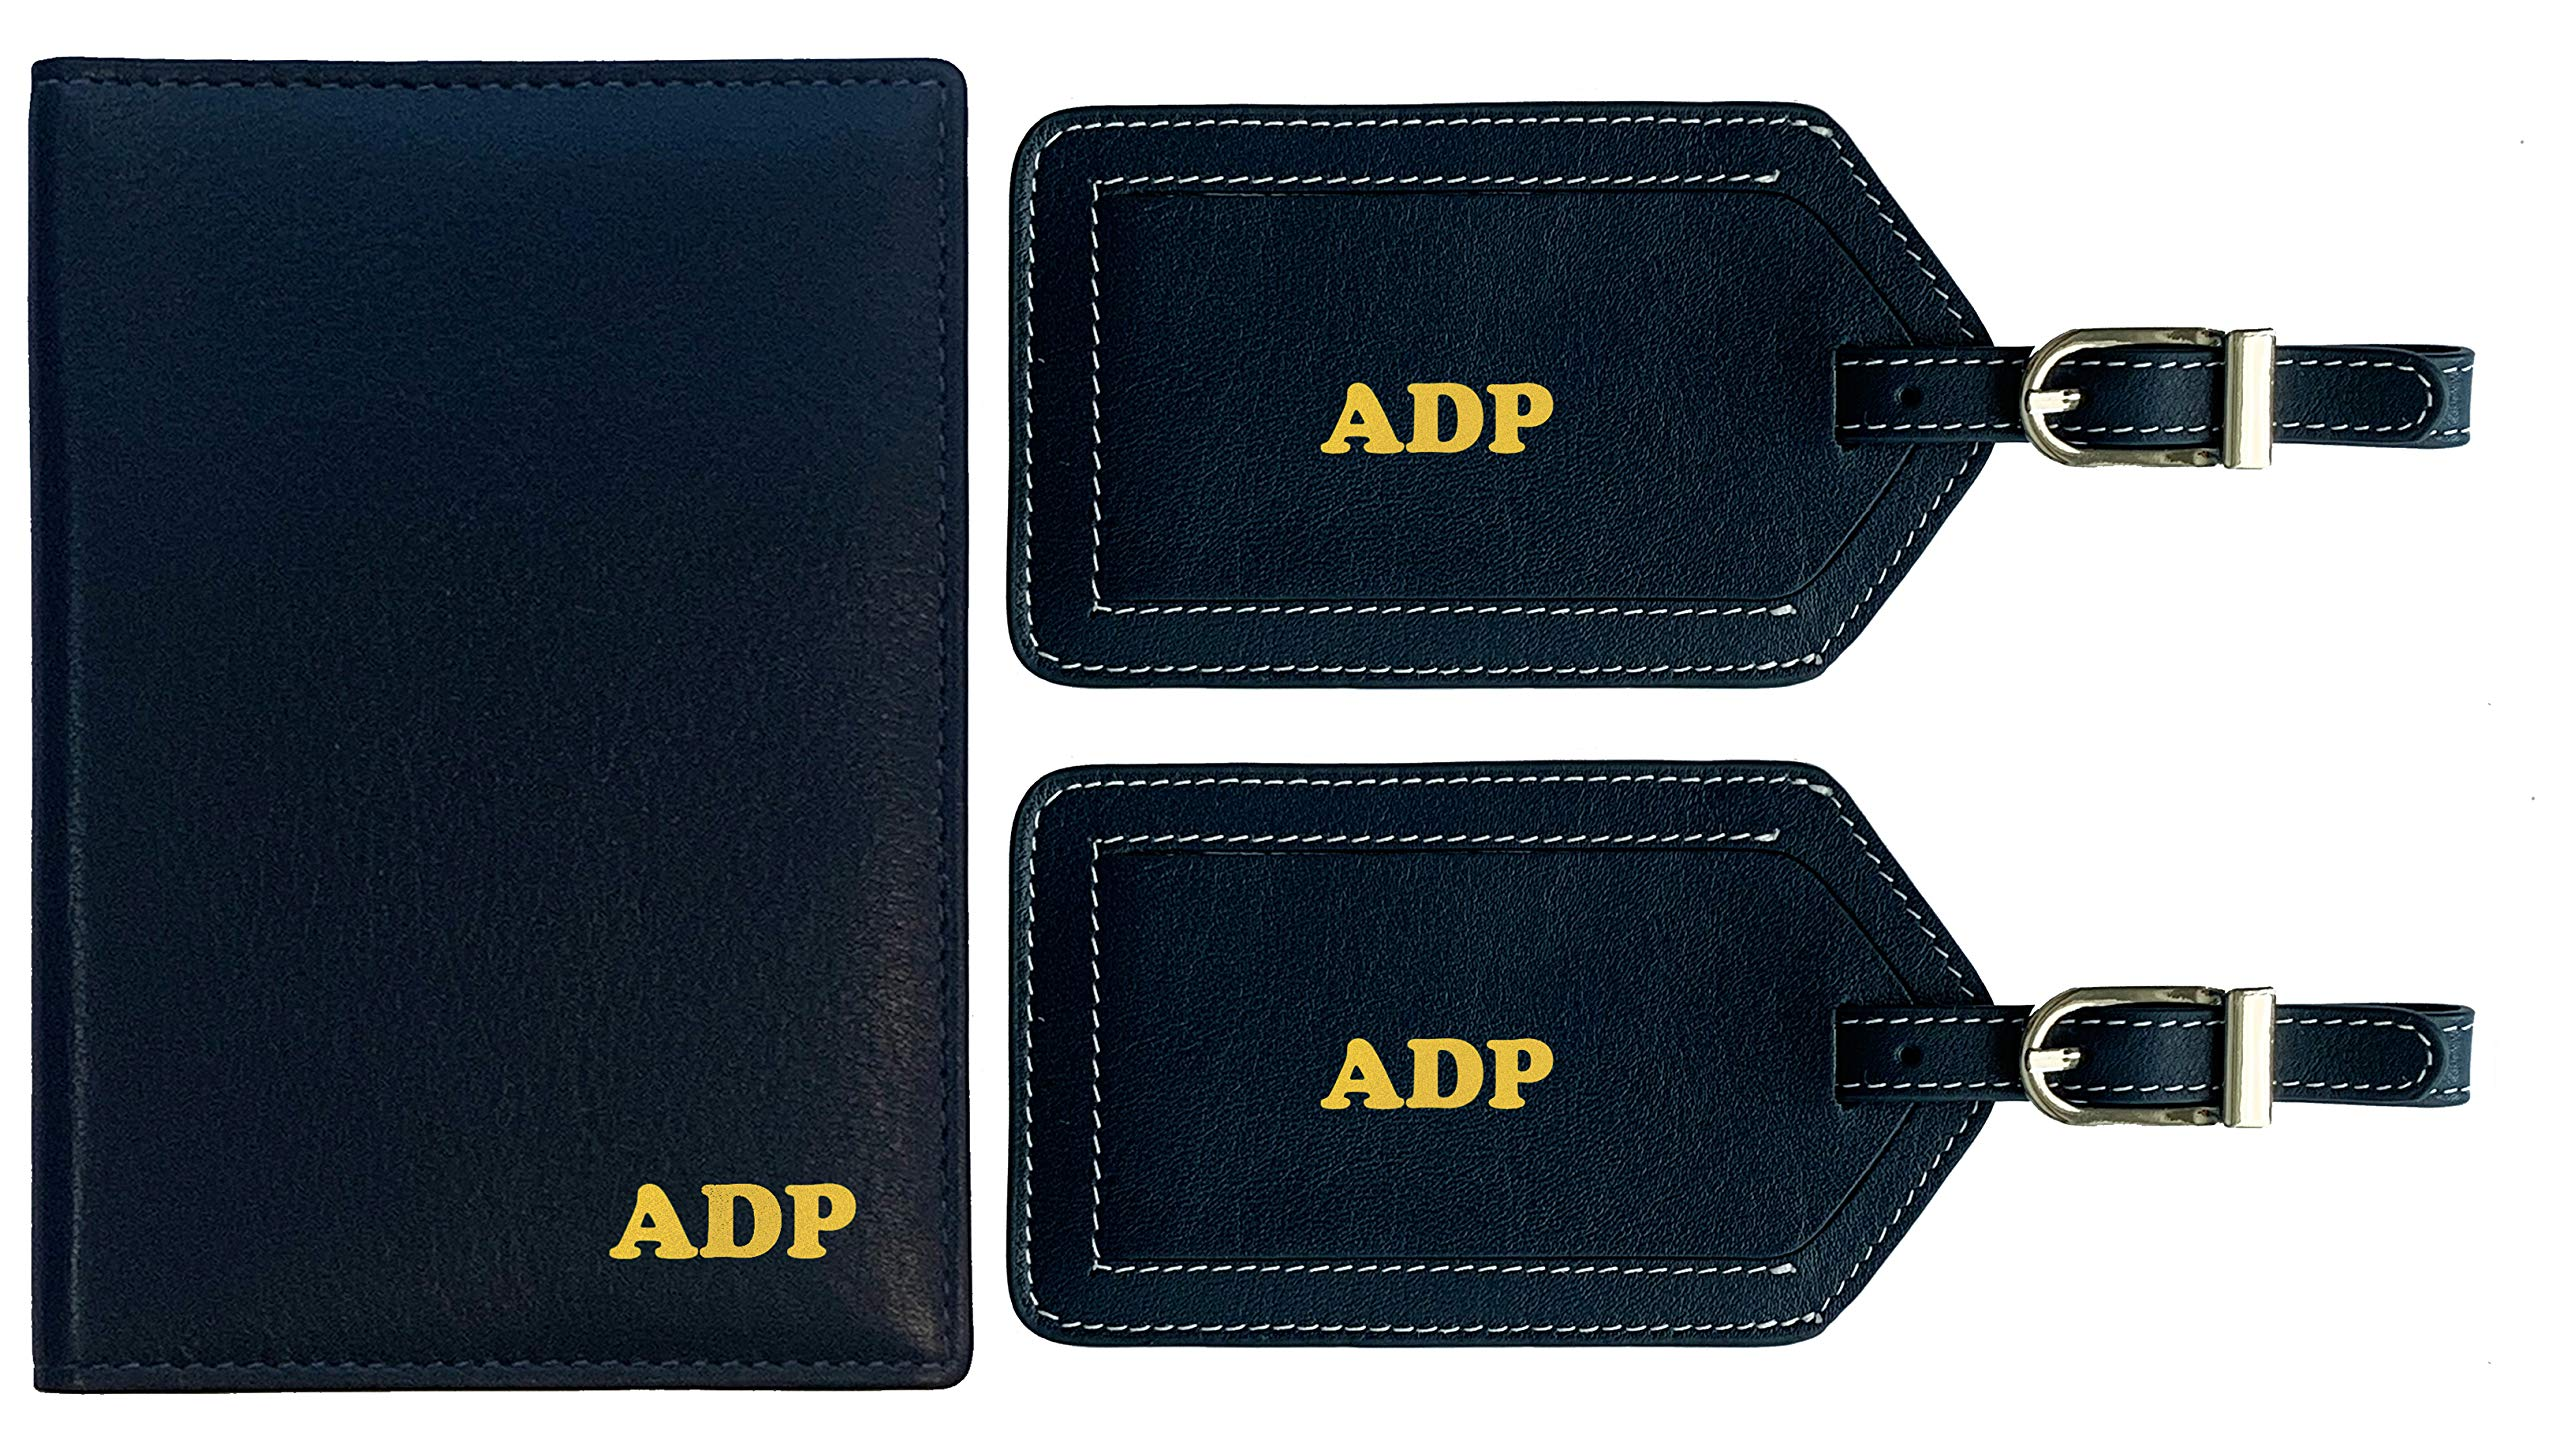 Personalized Monogrammed Navy Leather RFID Passport Wallet and 2 Luggage Tags